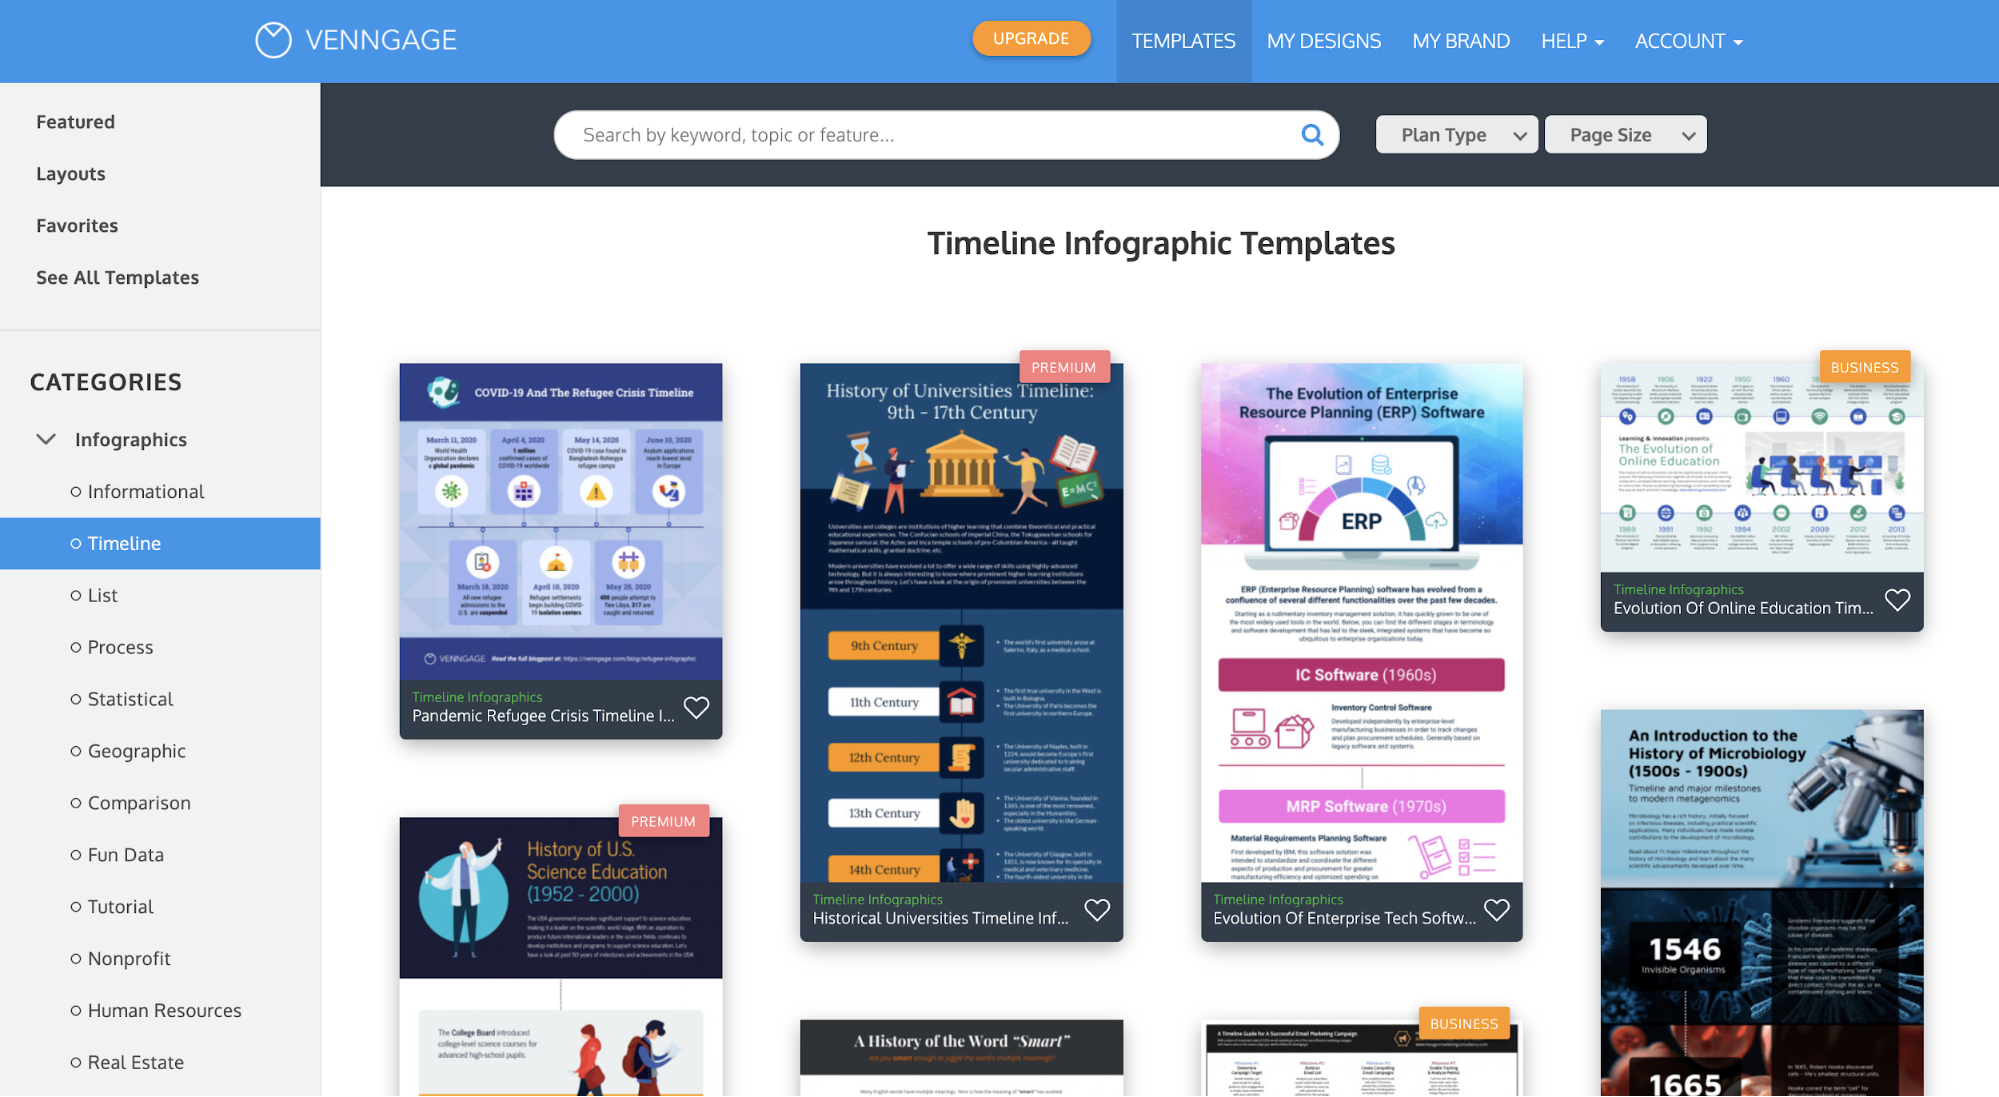 Venngage vs Visme Venngage 12 Infographic Template Category